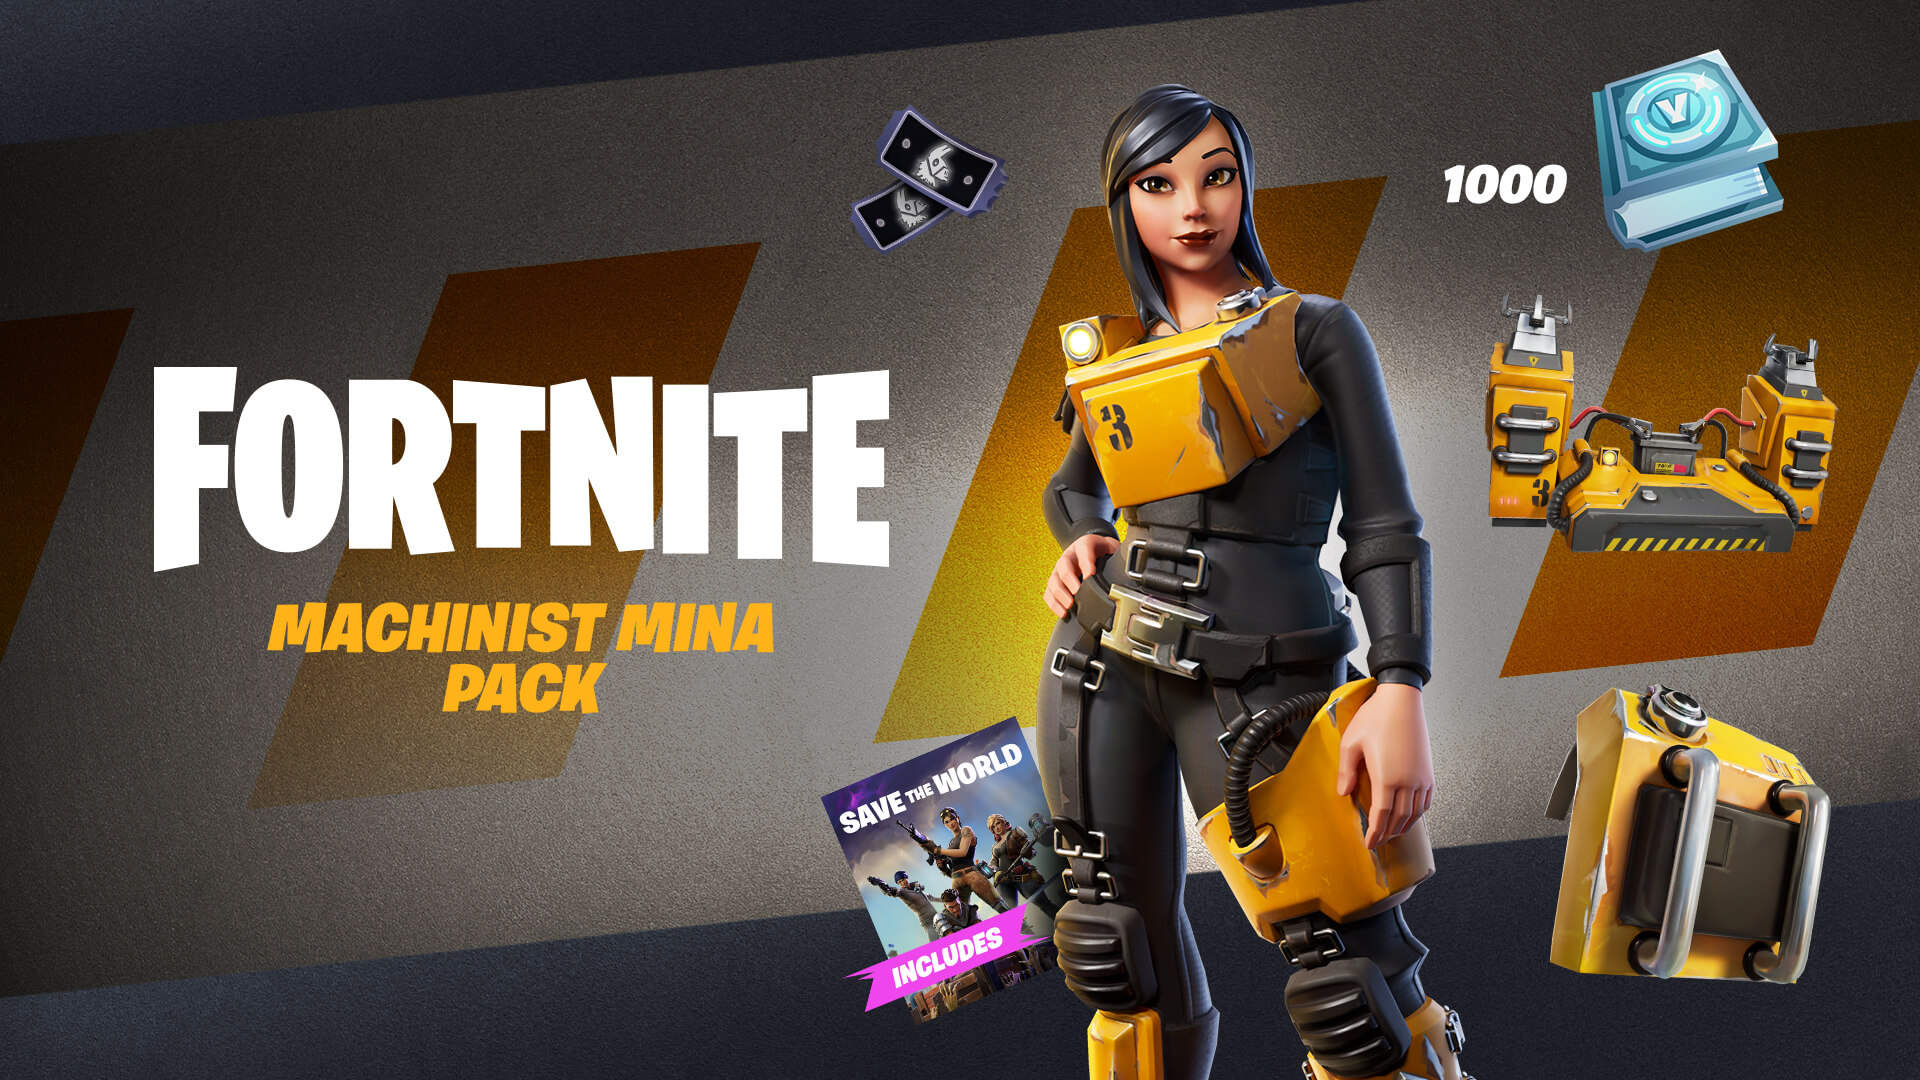 Fortnite Save the World Machinist Mina Pack